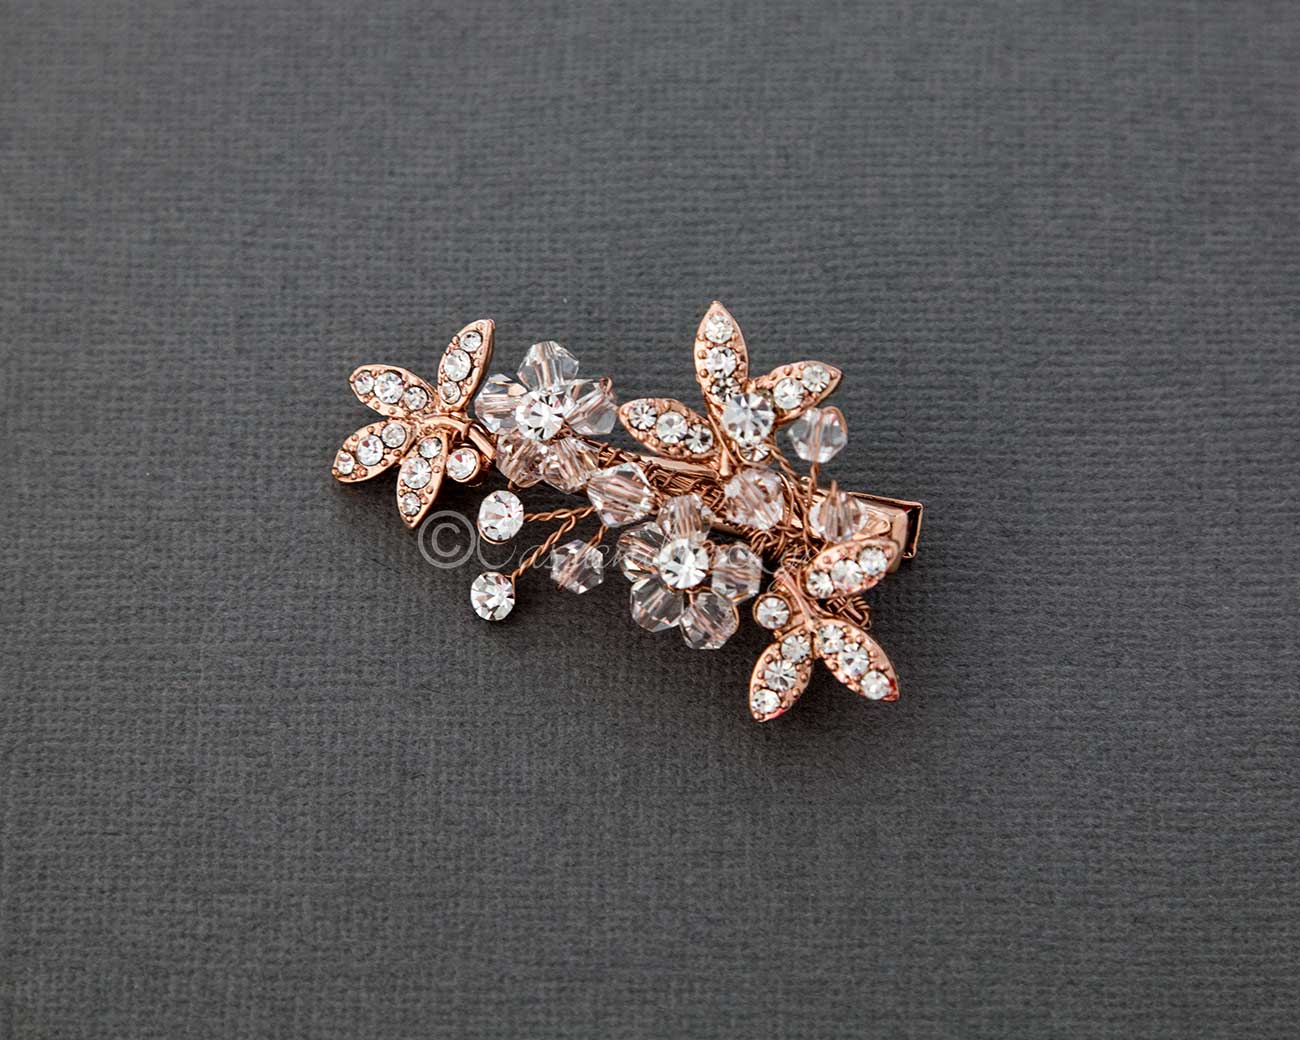 Small Crystal Flowers and Leaves Hair Clip